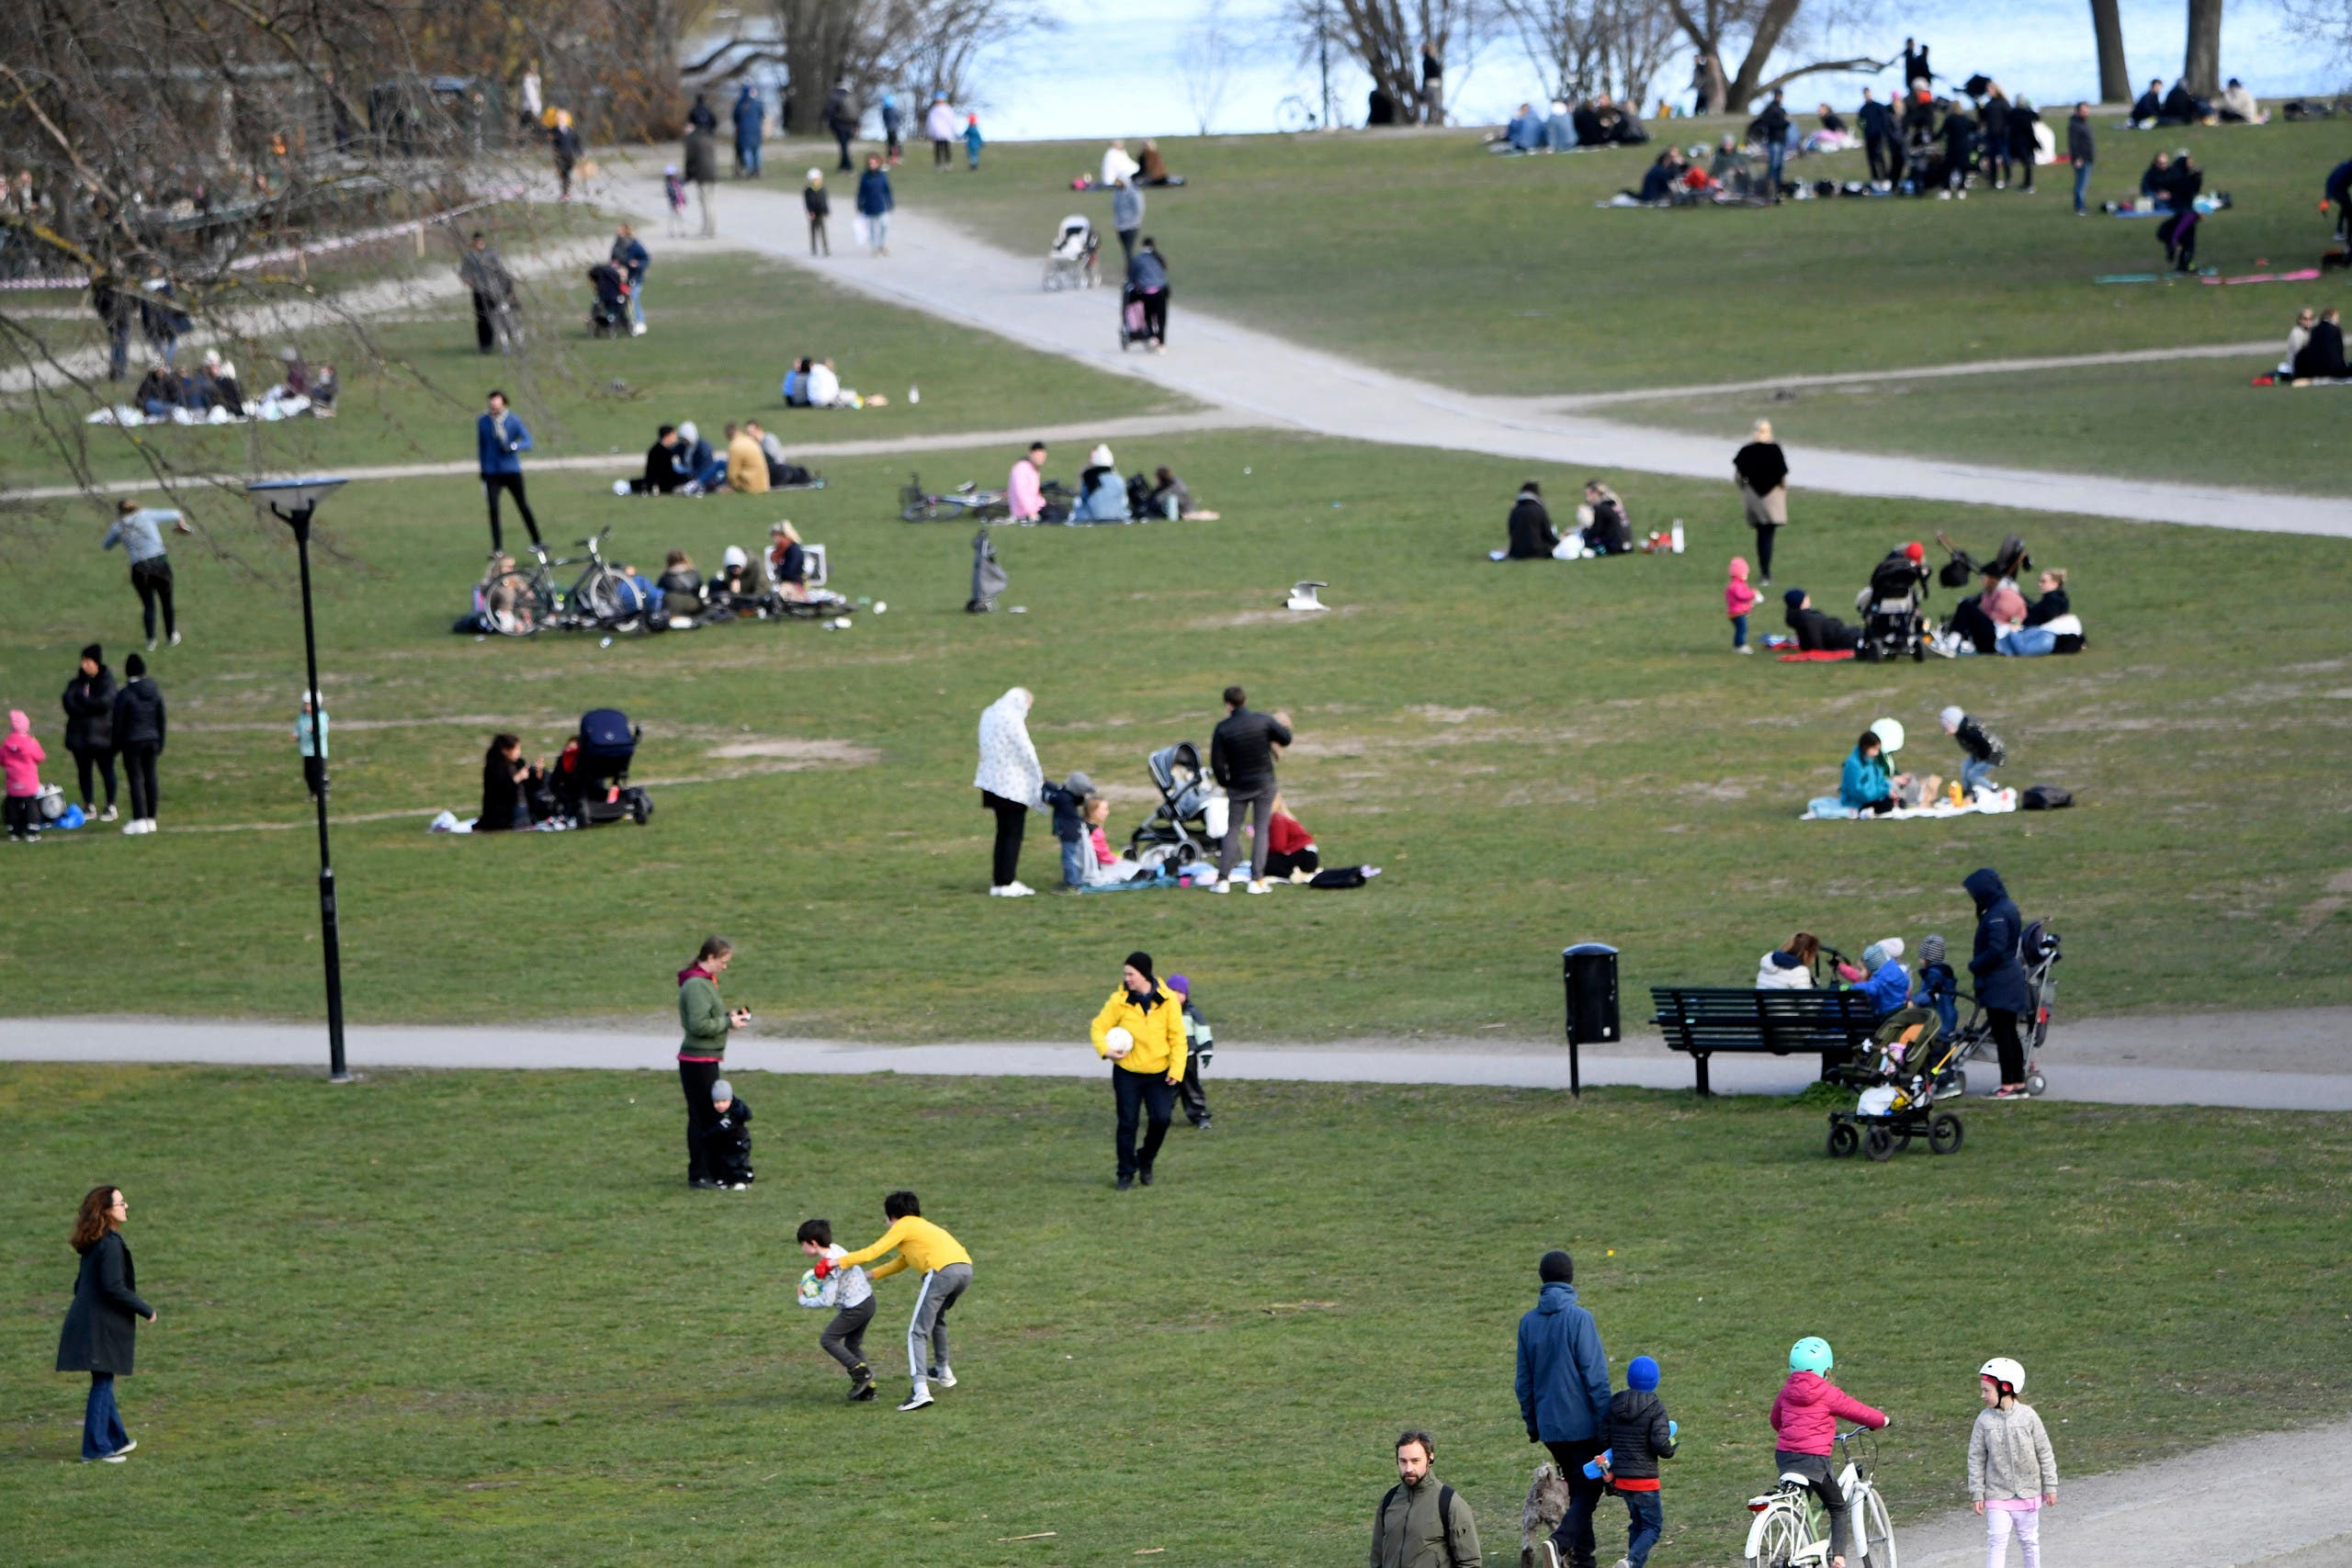 People visit the Raslambshovsparken Park in Stockholm, Sweden, on Saturday April 18, 2020. (AP)